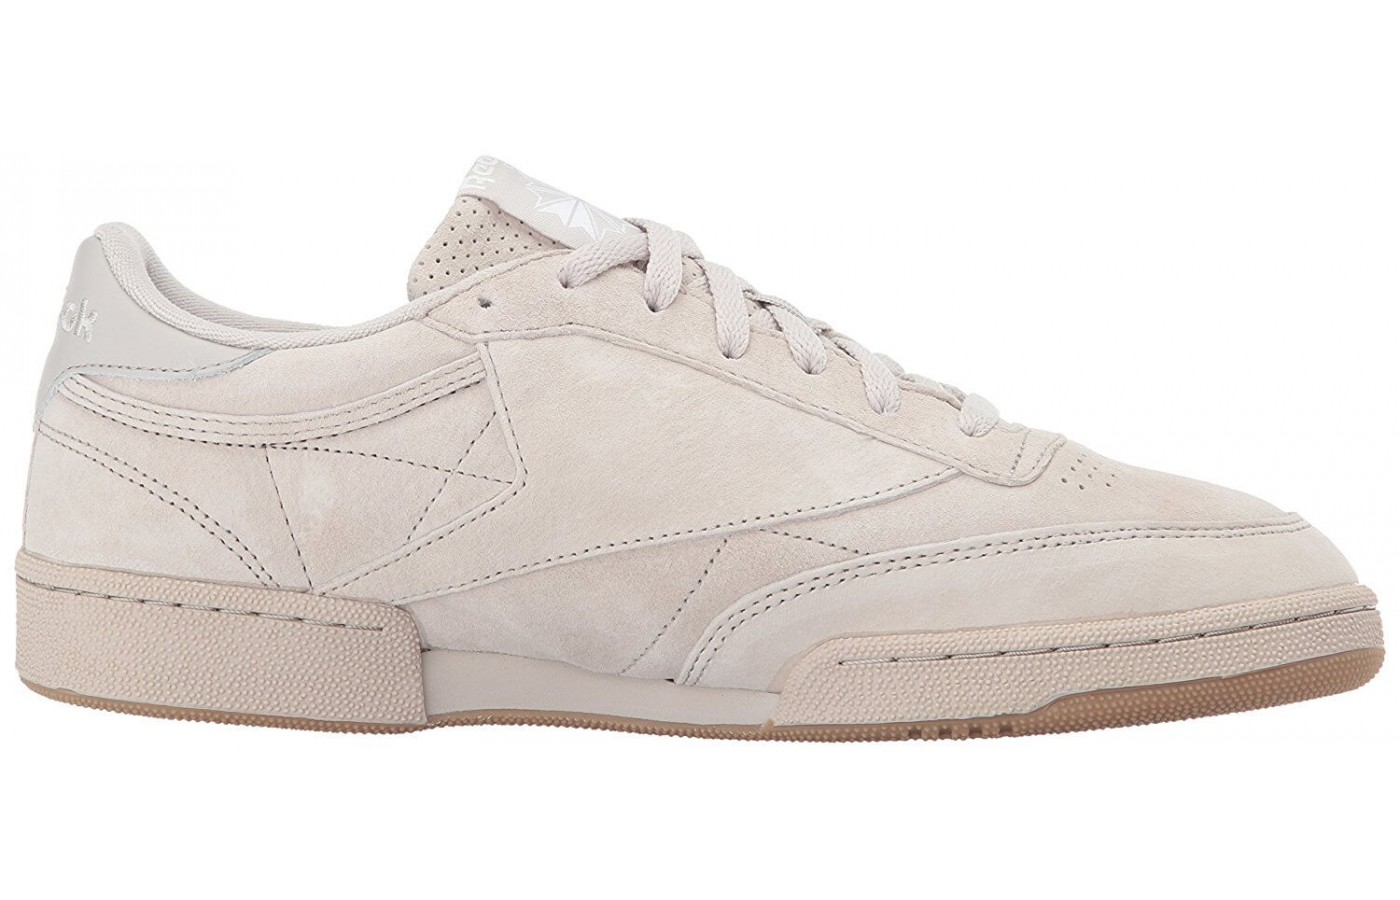 The Reebok Club C 85's midsole contains EVA foam